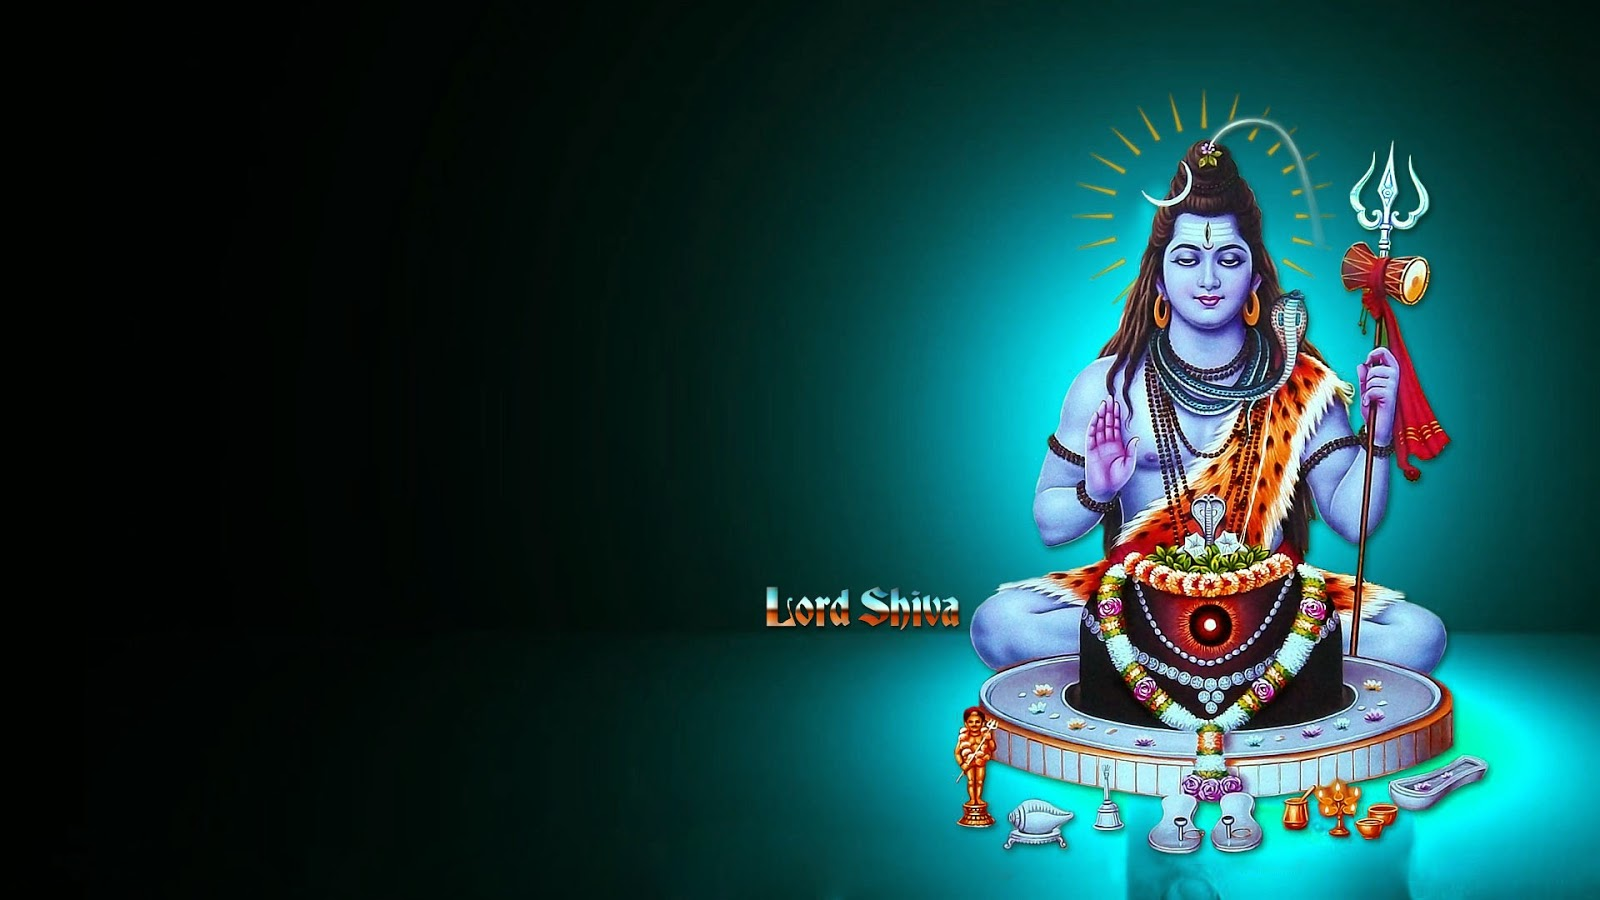 lord shiva lingam images high resolution